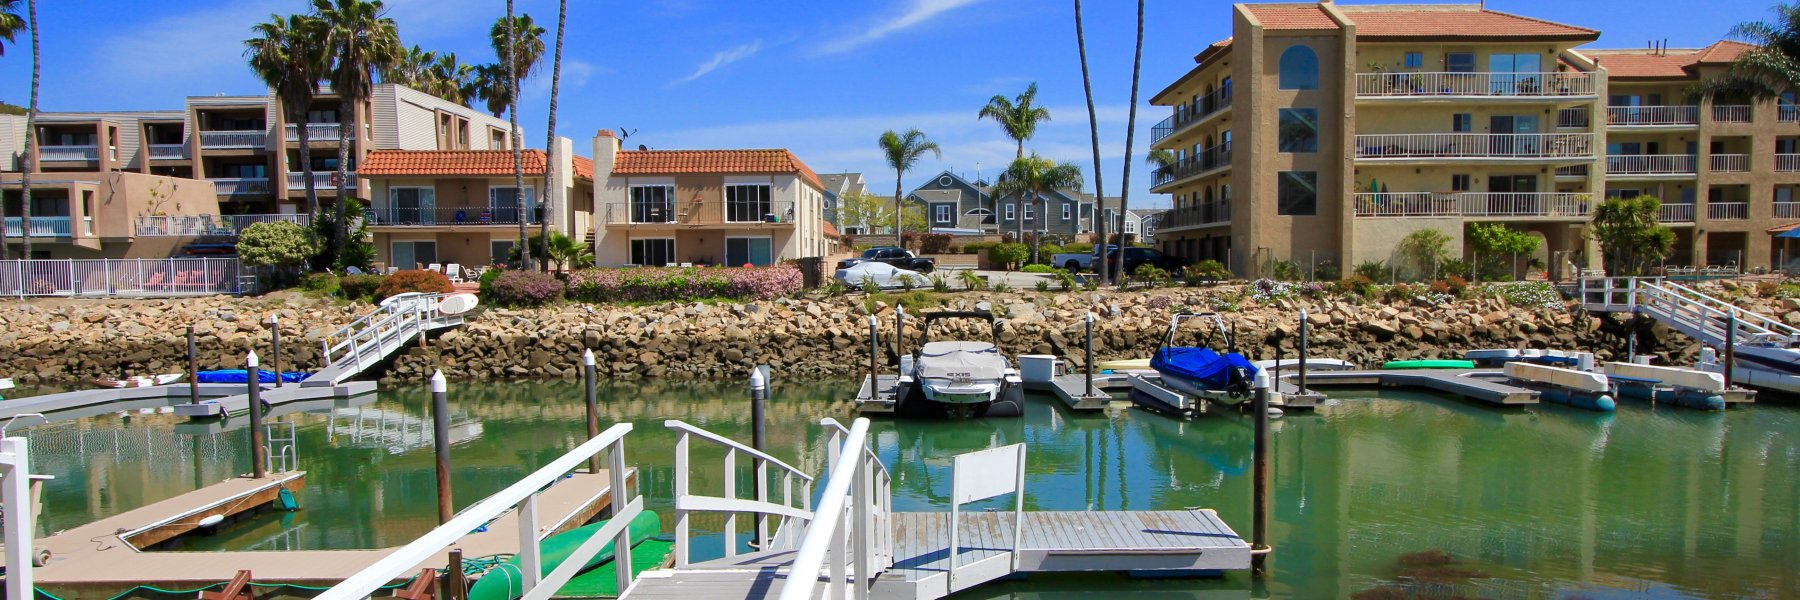 Bristol Cove is a community of homes in Carlsbad California